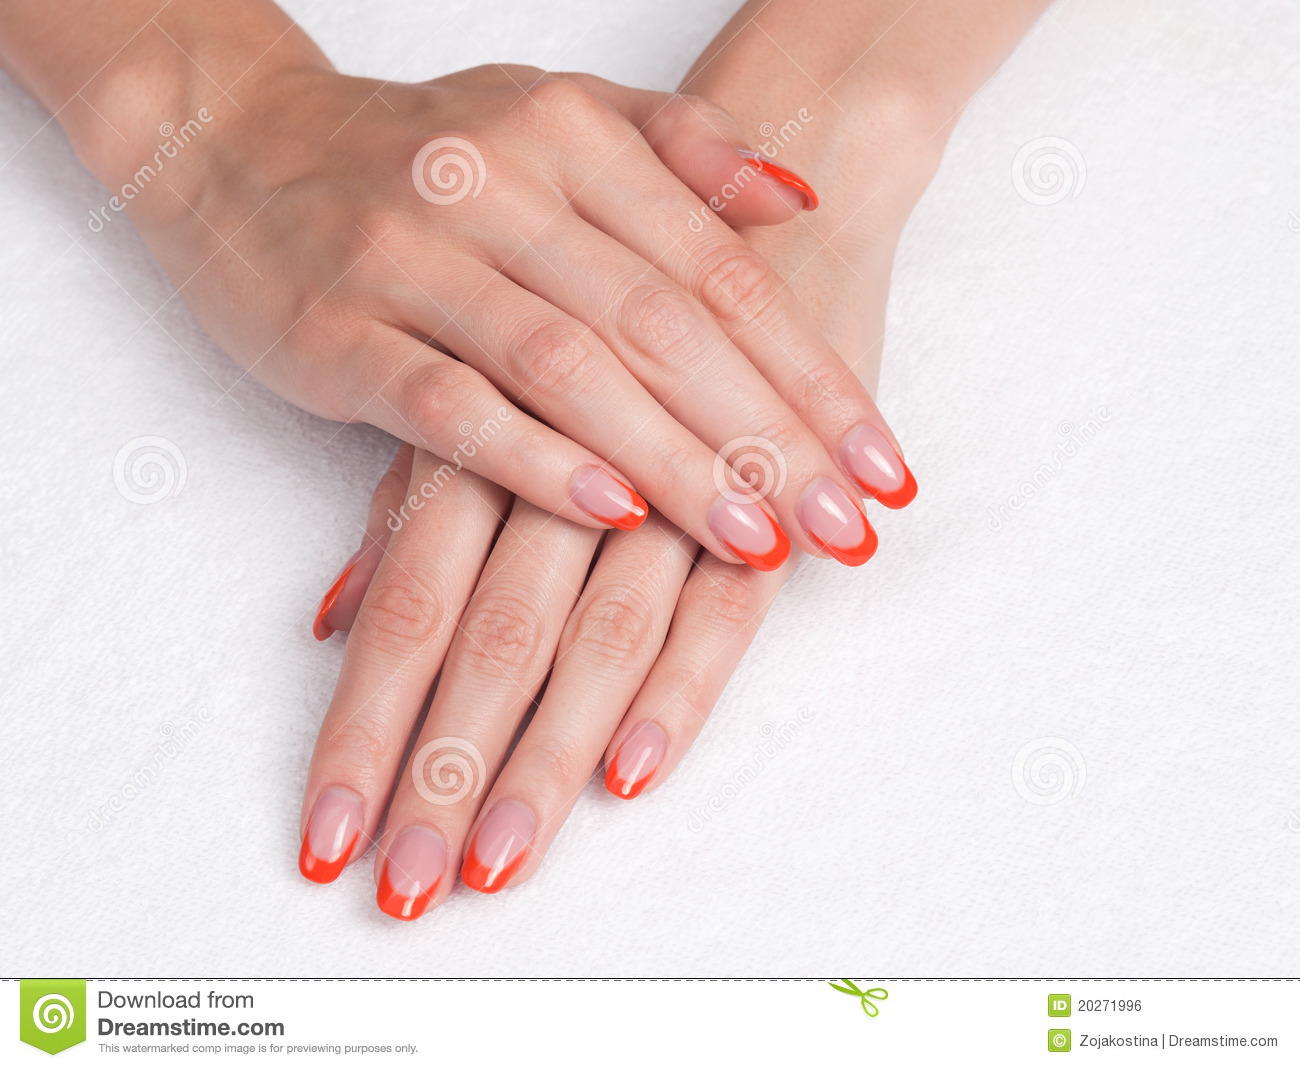 French Manicure With Orange Tips Royalty Free Stock Image ...